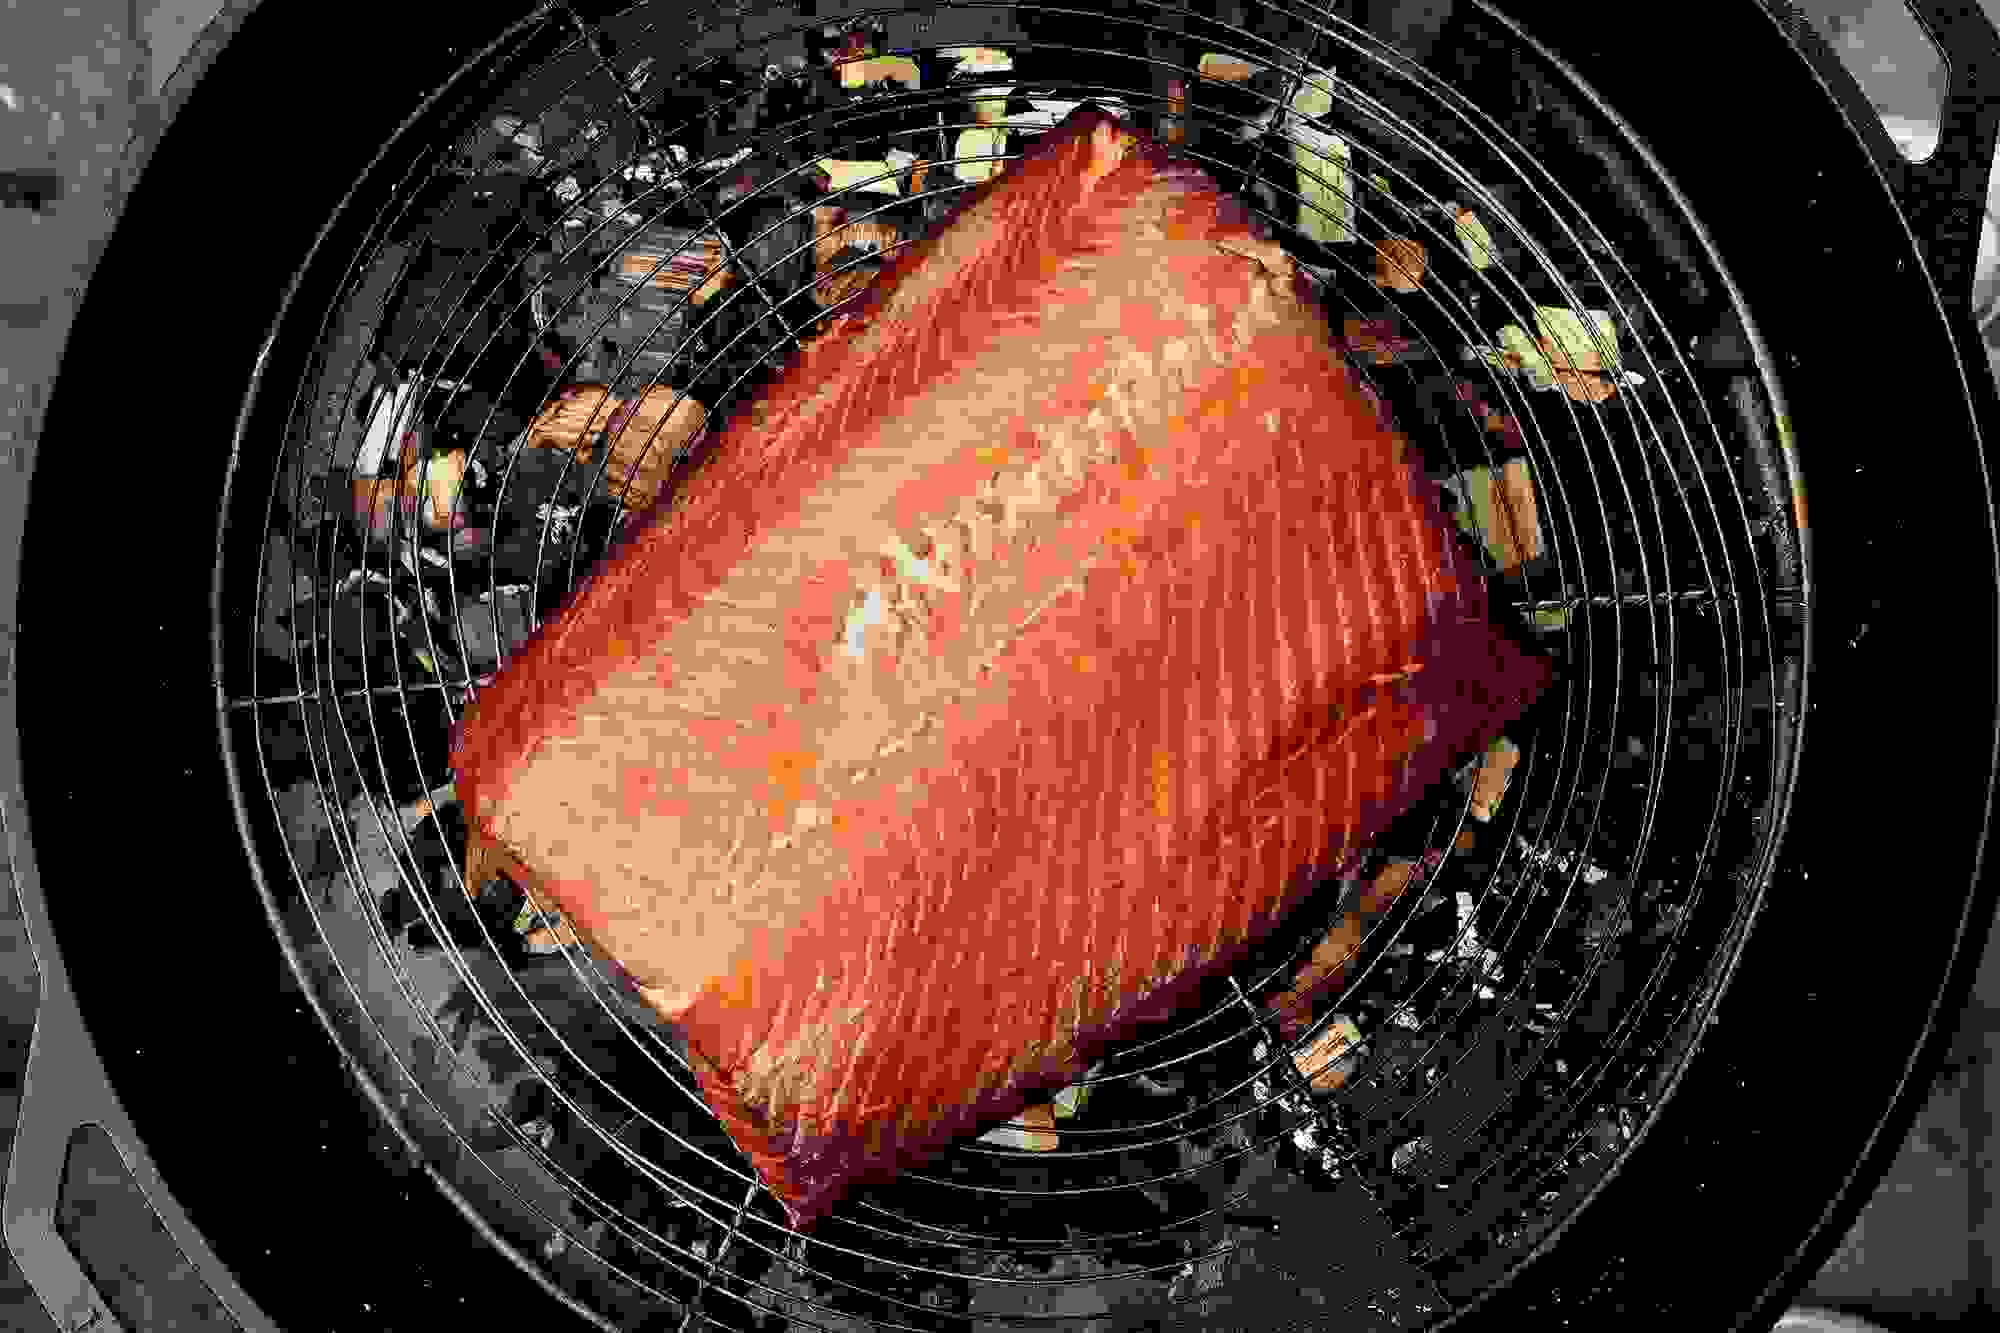 56389865_hot-smoked-salmon_6x4.jpg